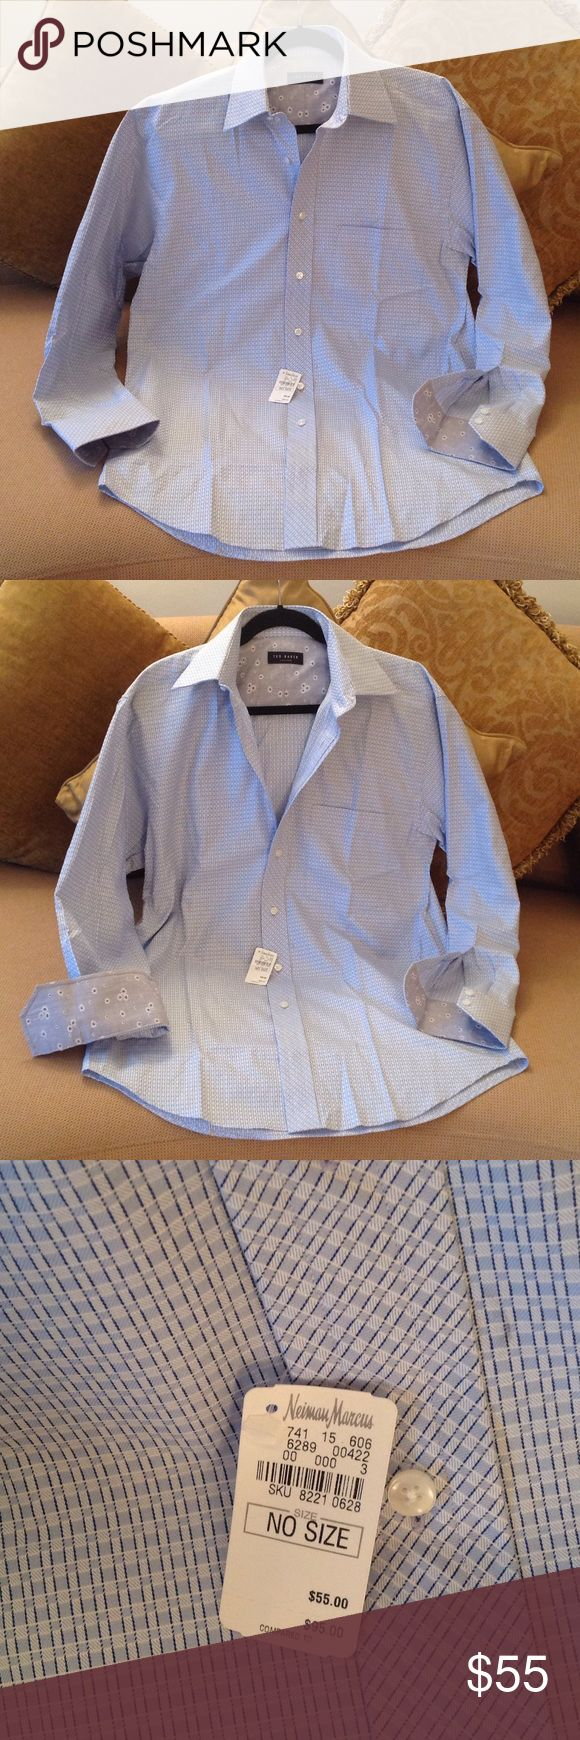 💙 'Ted Baker of London' - Neiman Marcus Brand New Shirt by Ted Baker from Neiman Marcus. Size 15.5 - 32/33. Stylish Light Blue with tiny Deep Blue detailing.  The Neiman Marcus sales tags are attached. The inside collar and Cuffs has a Sharp Floral pattern for a little extra added personality. Excellent condition with no stains, tears or other imperfections. Ted Baker London Shirts Dress Shirts